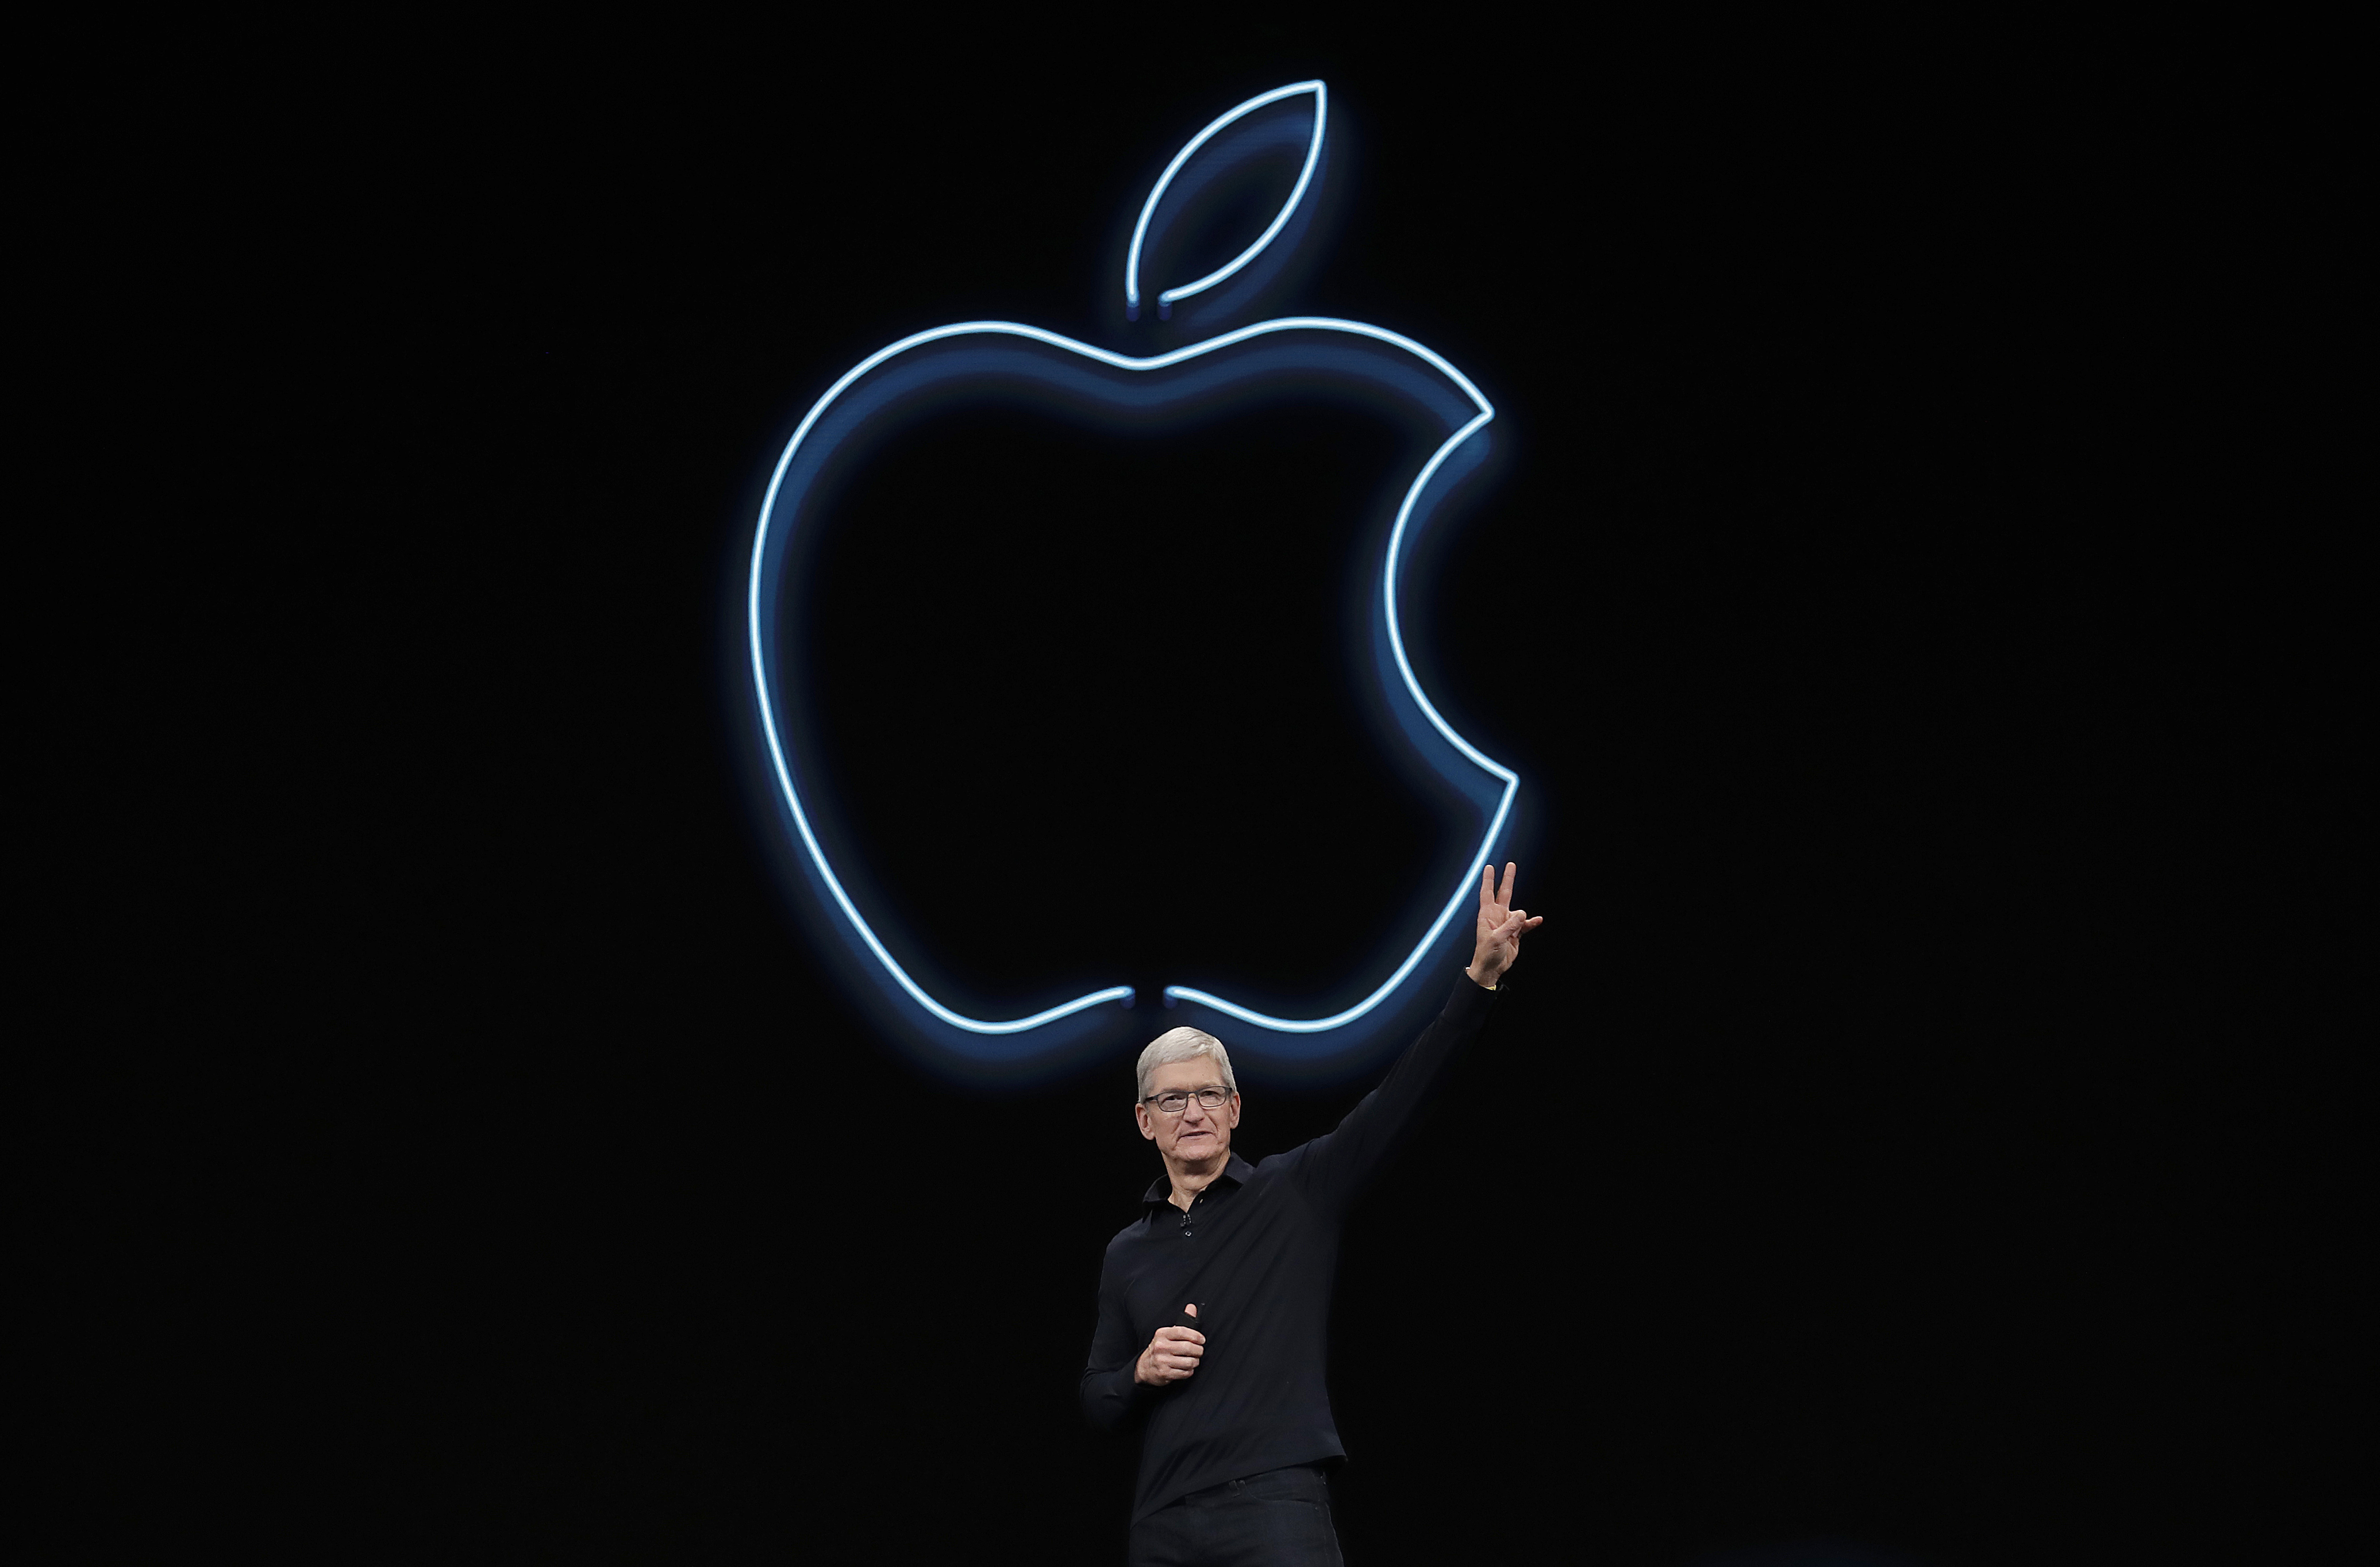 What Aussies need to know about Apple's new gadgets